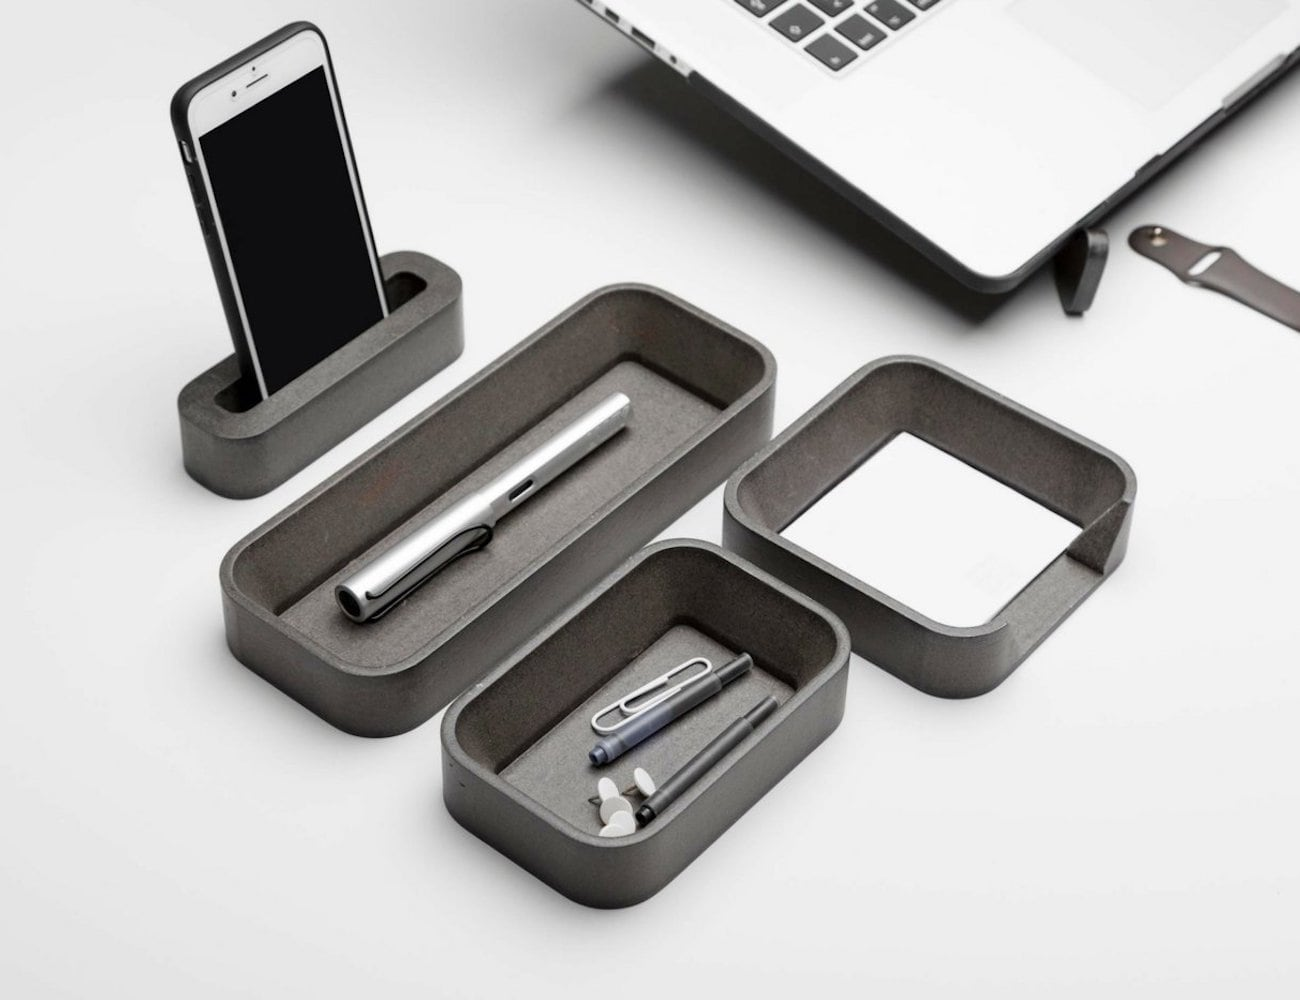 luliaShopCom Grey Desk Organizer Set